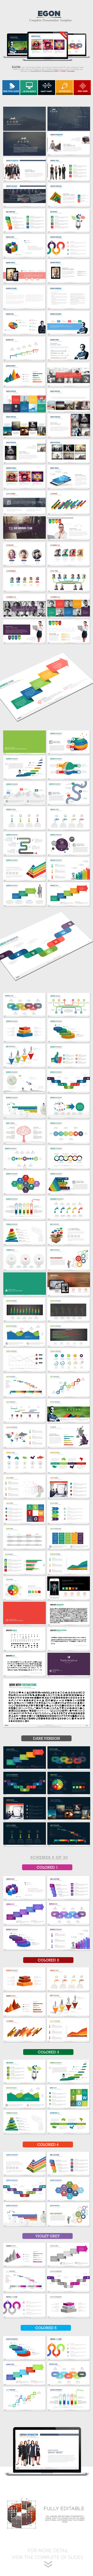 GraphicRiver Egon Complete Powerpoint Template 9804263